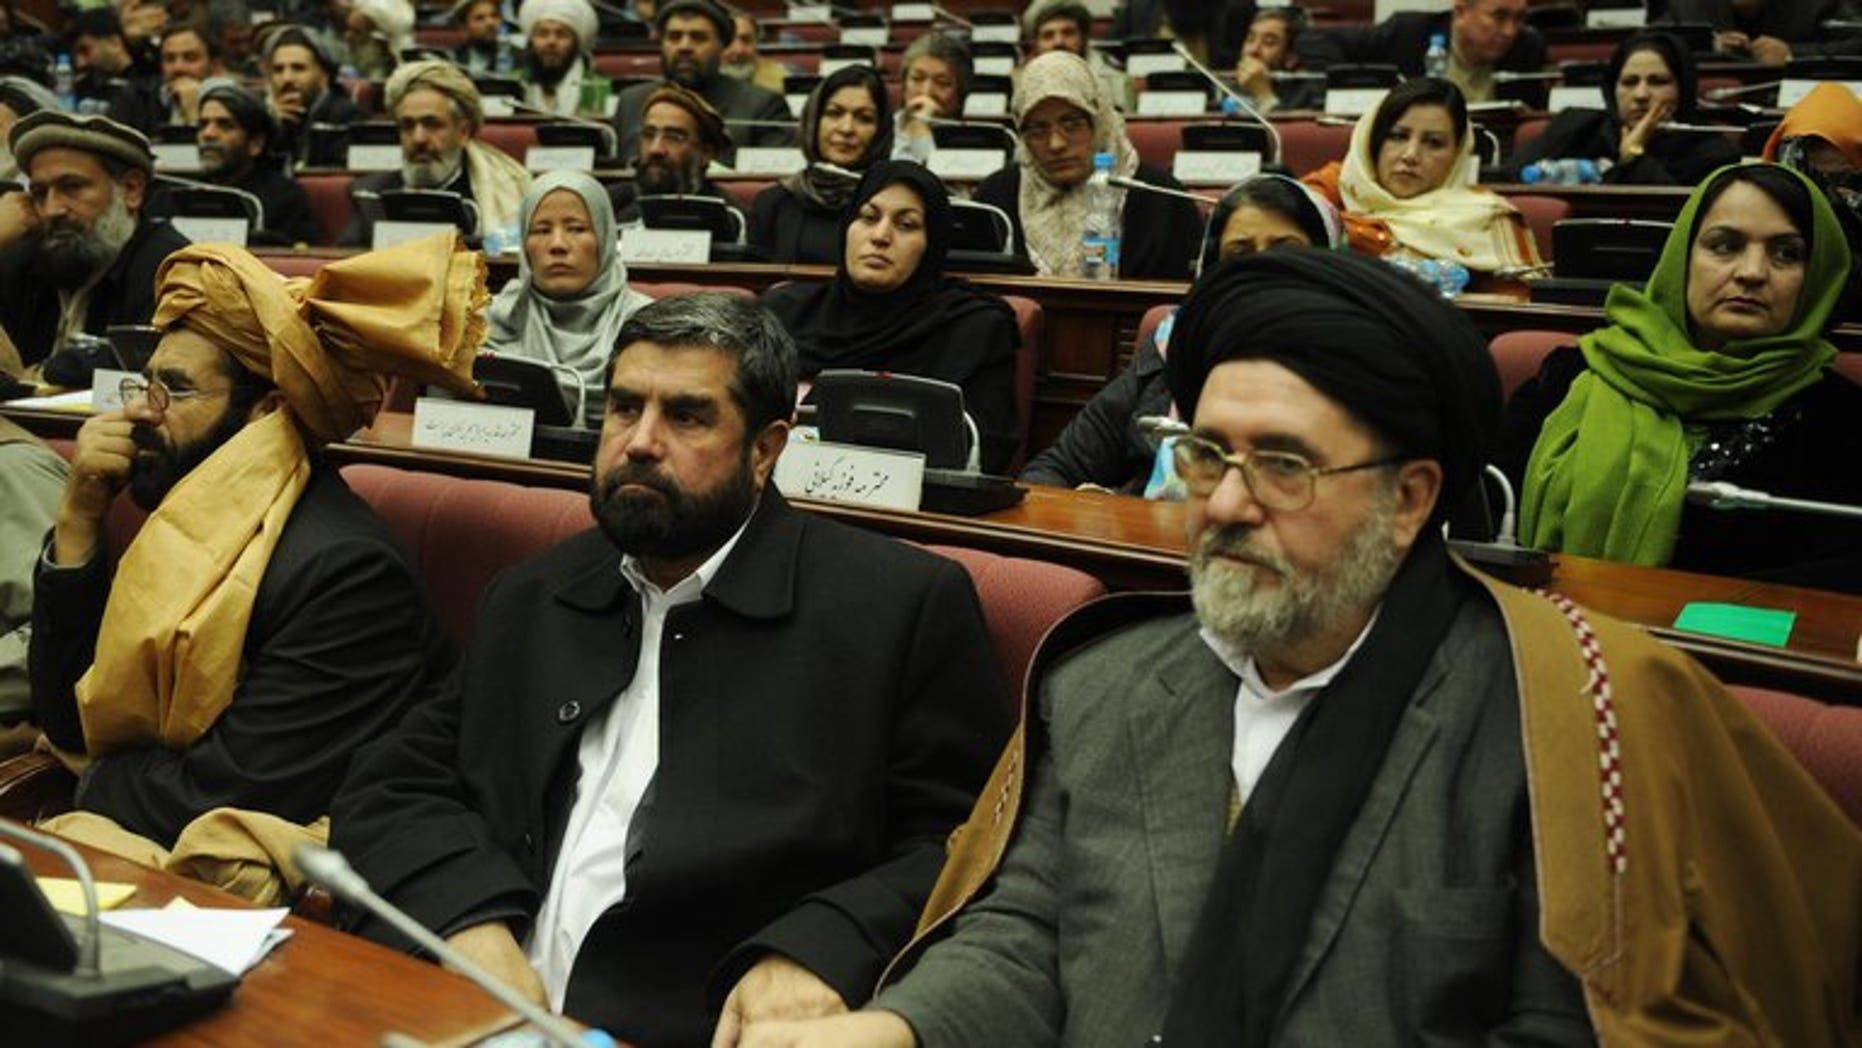 Afghan lawmakers attend a parliamentary session in Kabul, on January 2, 2010. The MPs have passed a bill to give the country's controversial electoral complaints watchdog more power and independence for the upcoming elections.